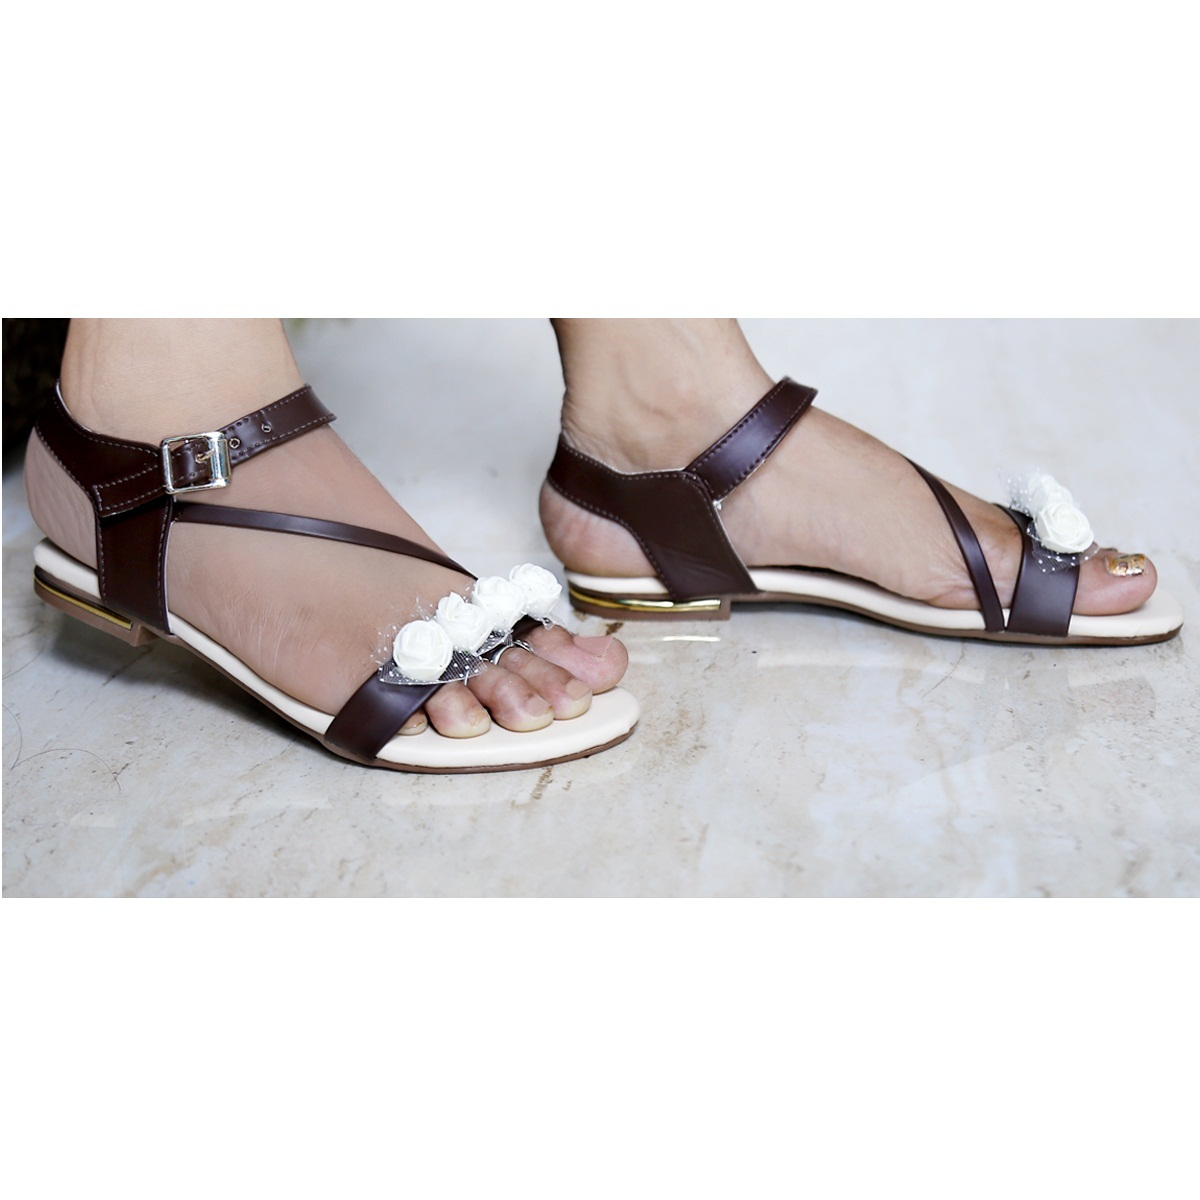 SYNTHETIC MATERIAL FLAT SANDALS WOMEN'S AND GIRLS